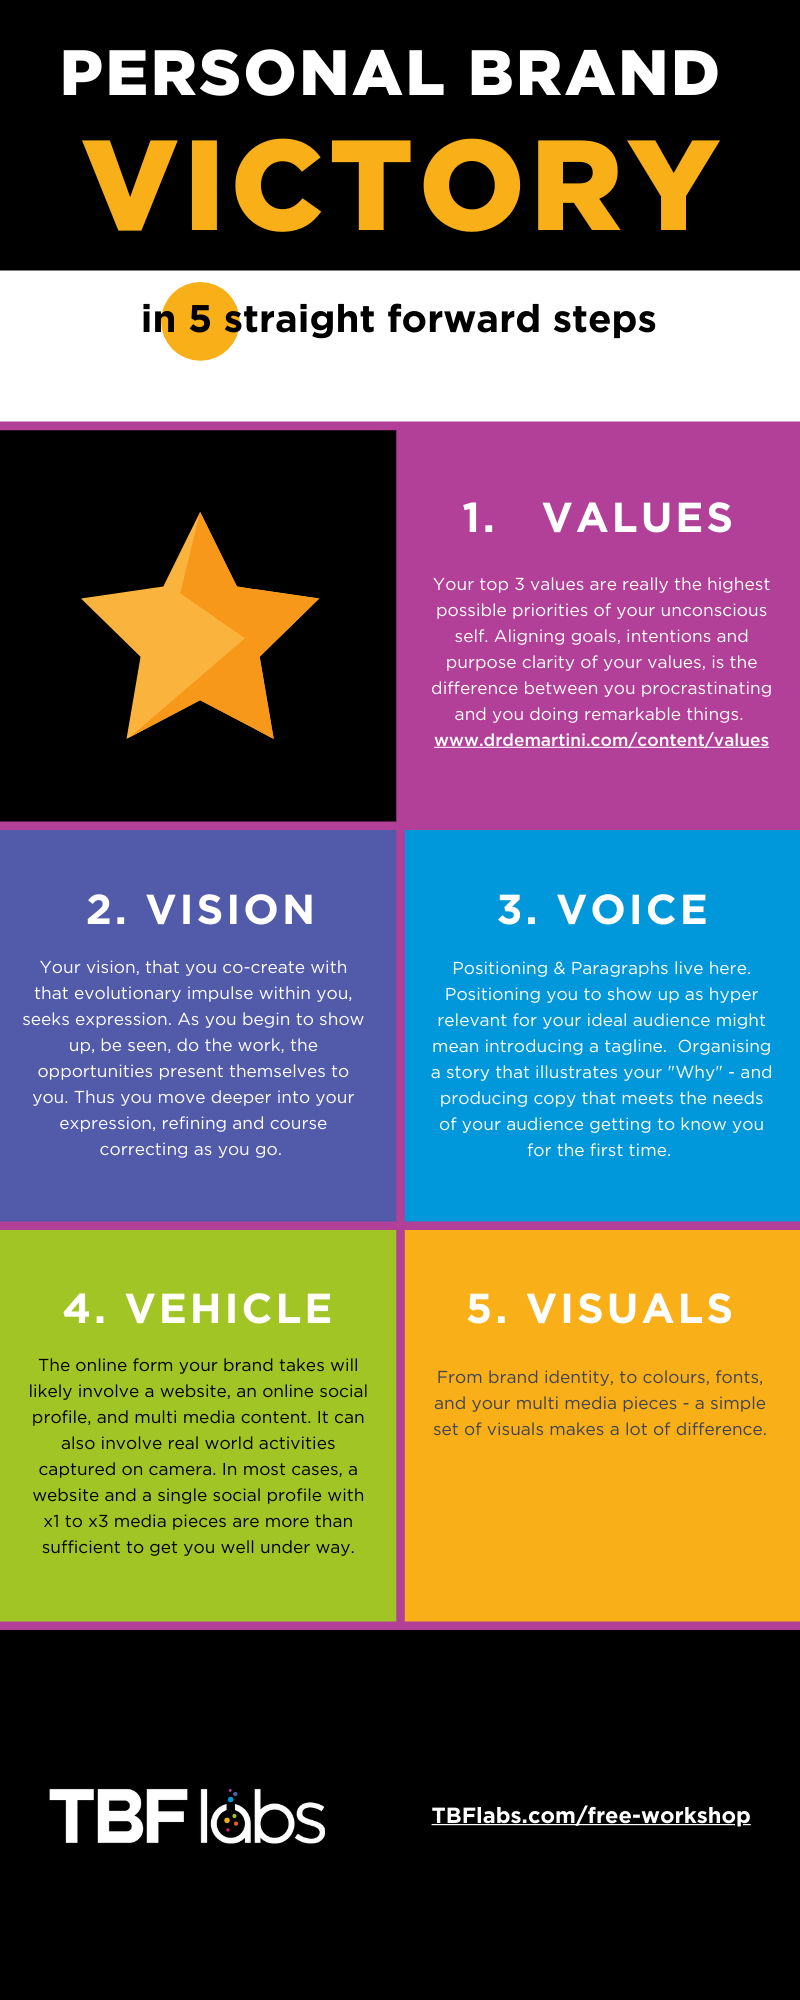 Personal Brand Victory in 5 straight forward steps